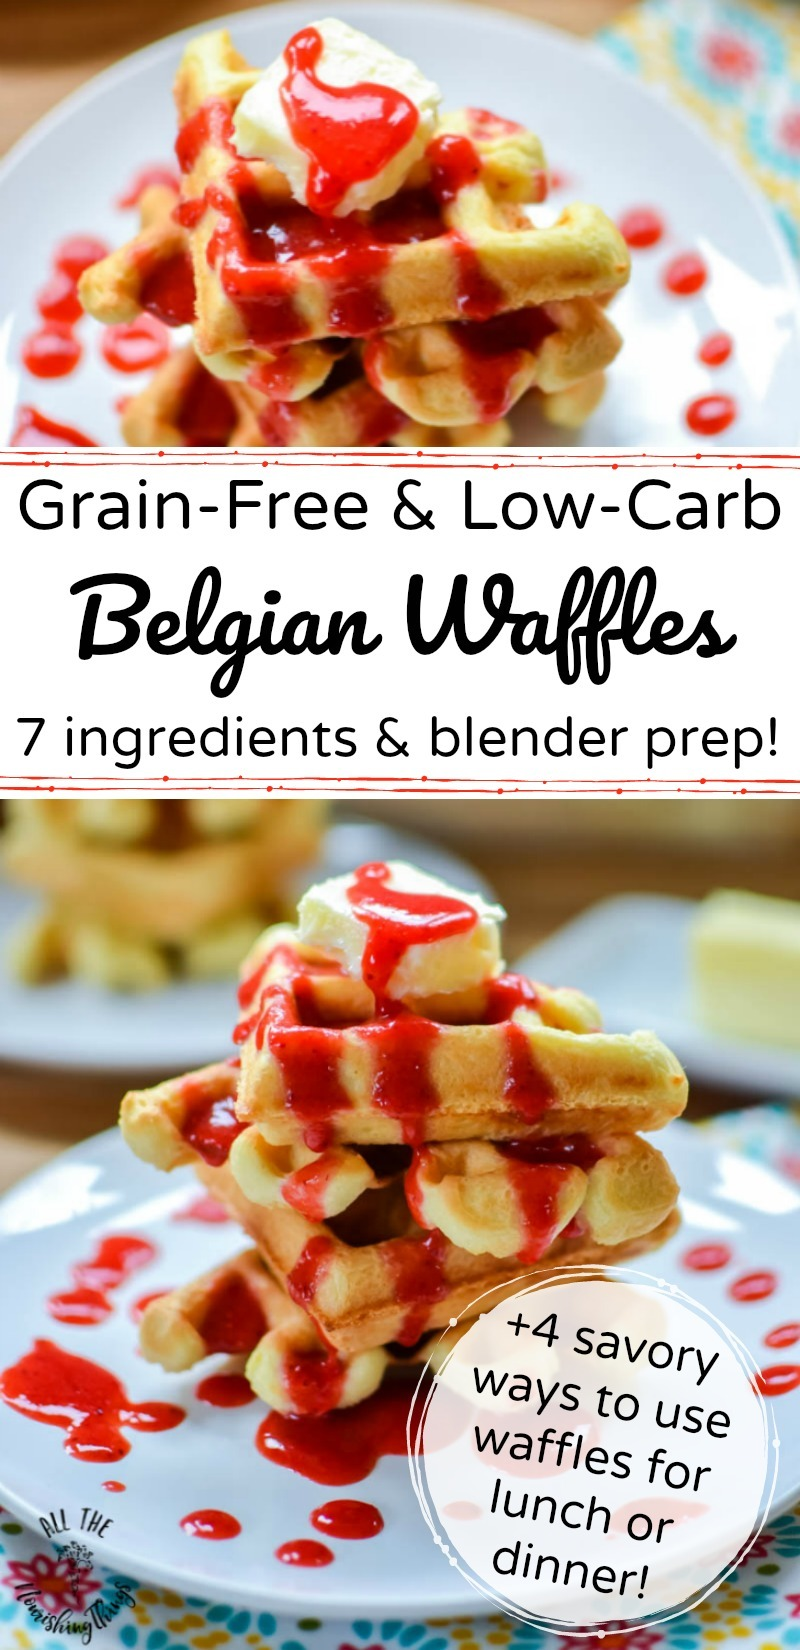 grain-free and low-carb belgian waffles with text overlay